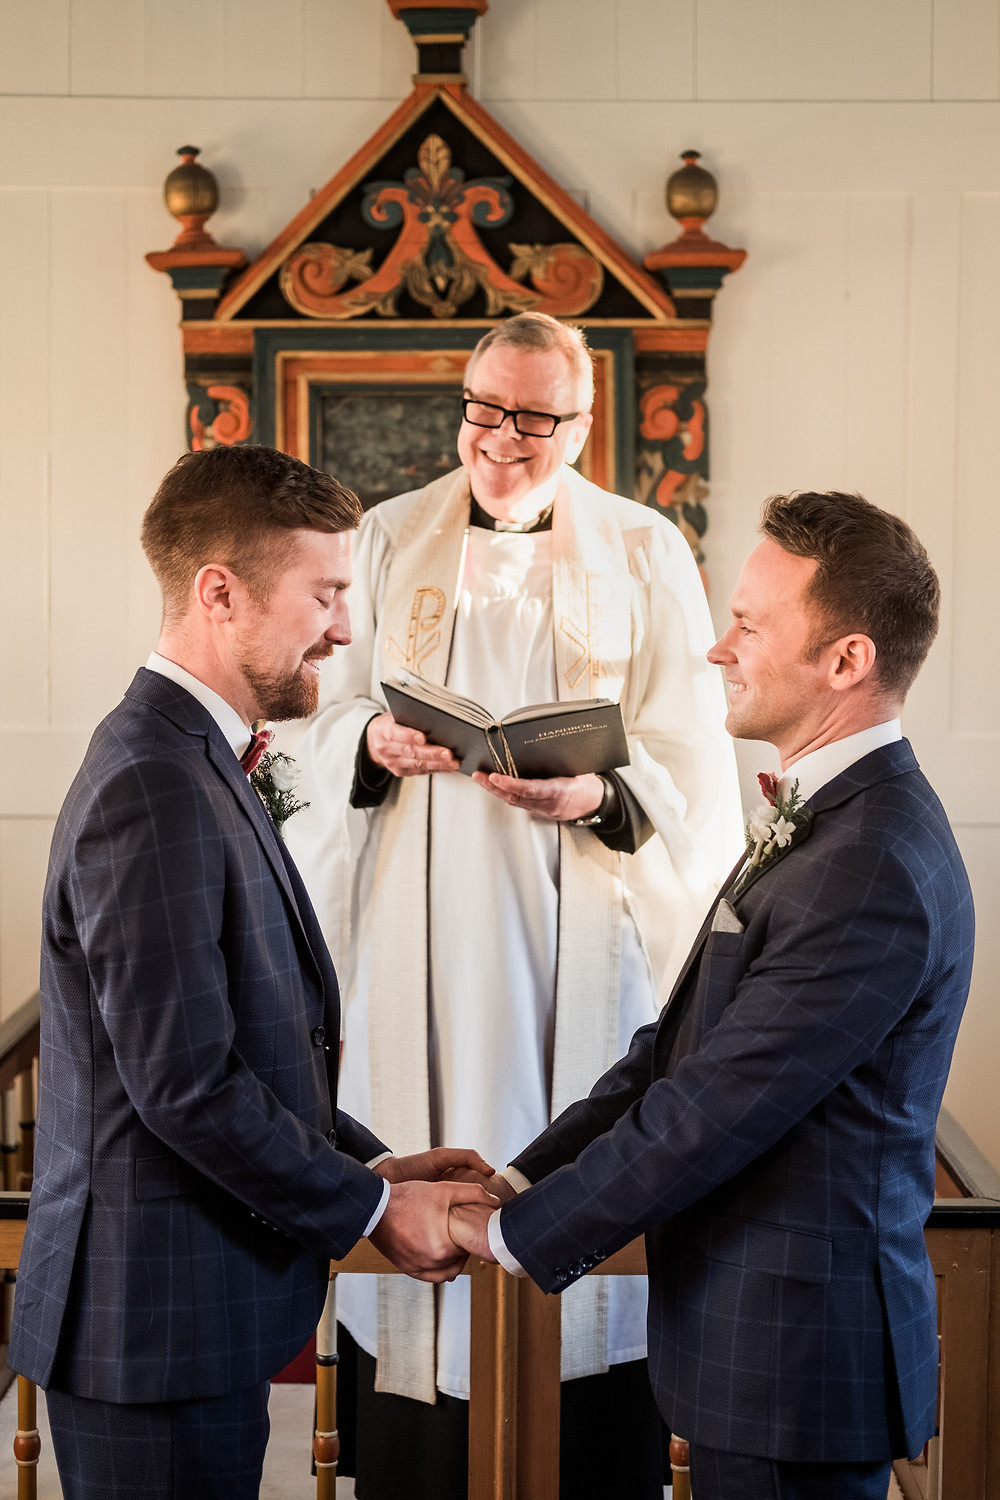 Gay Wedding ceremony in Iceland